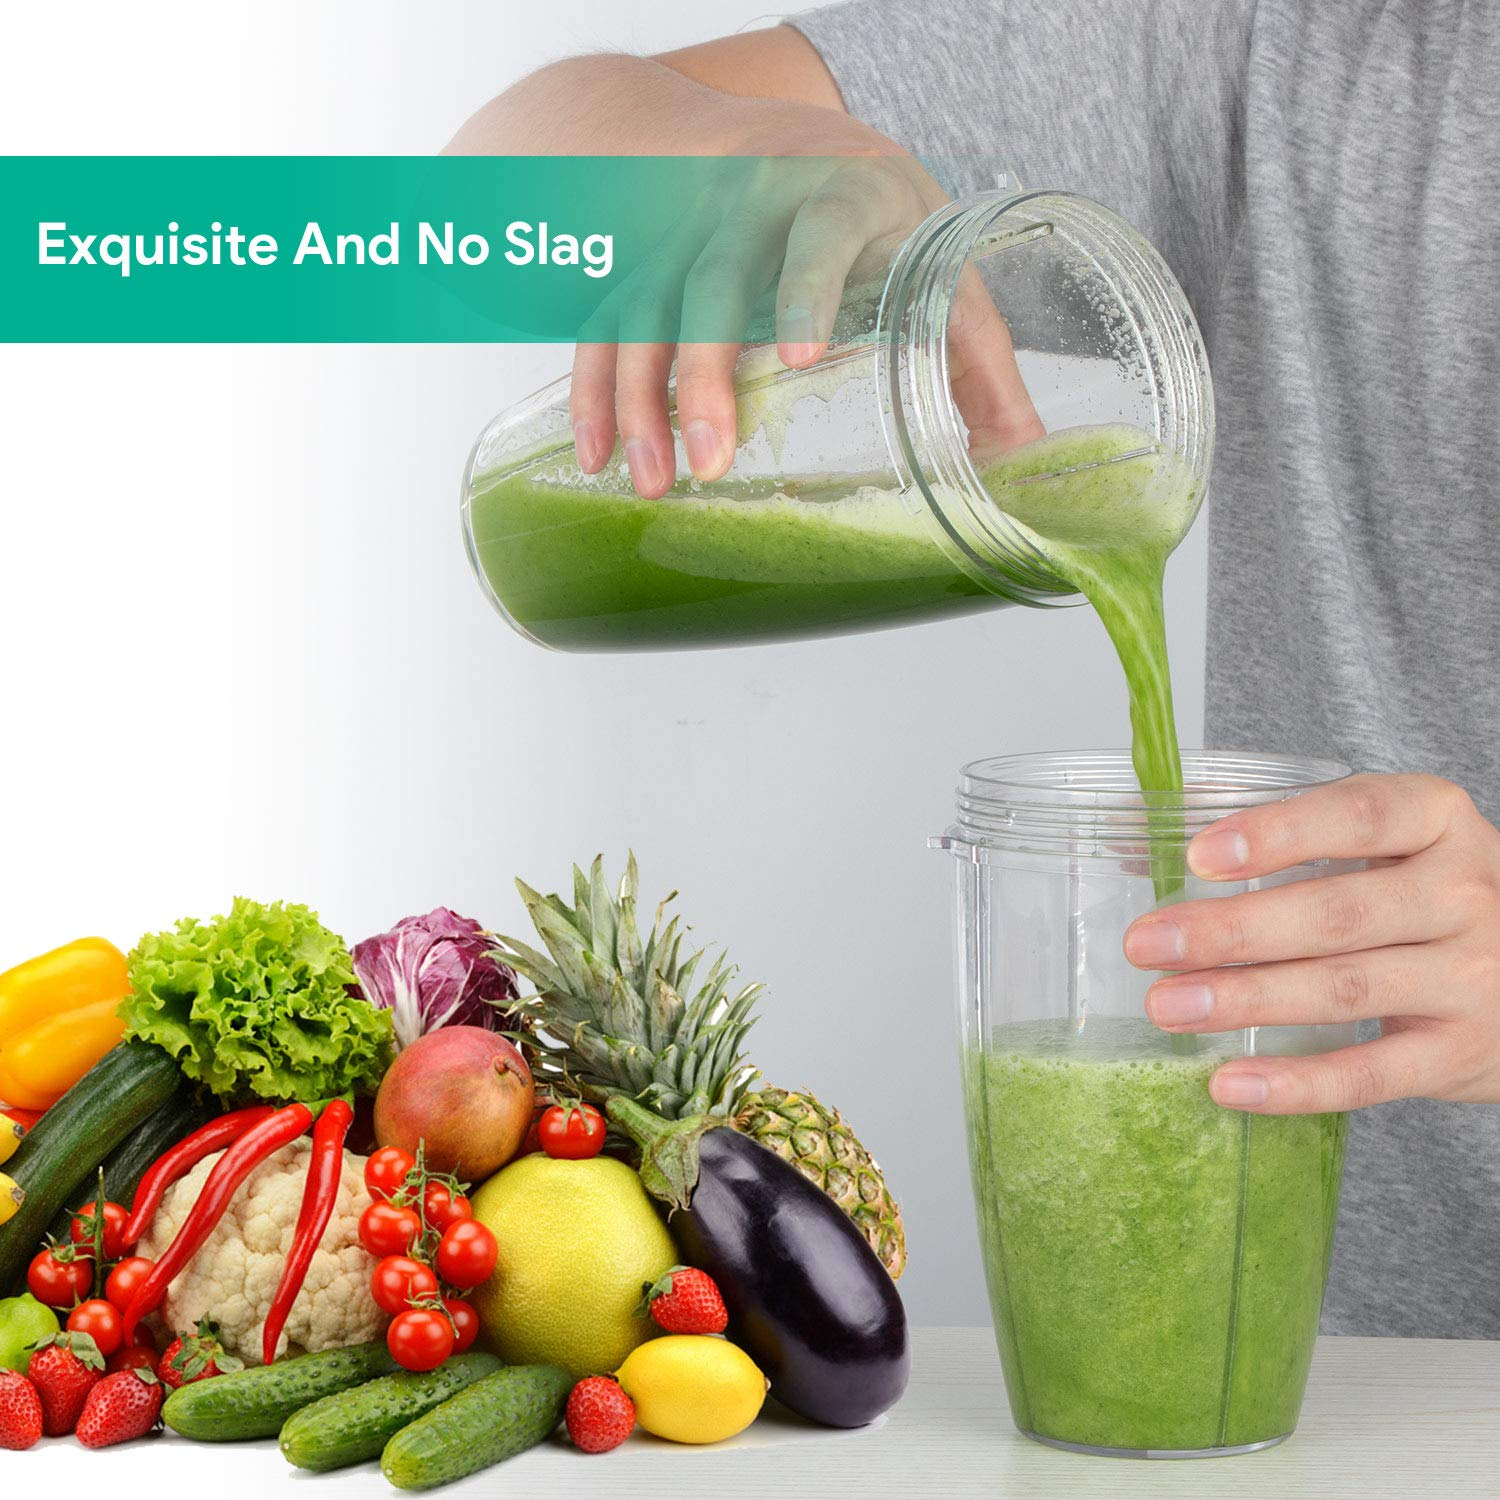 Blender, Smoothie Blender, Personal Blender, Blender For Shakes And Smoothies, Stainless Steel Juicer Blender Electric, Professional-Grade Power,High-Speed Blender For Baby Food With 1000W, BPA Free,FDA, Recipes Including by Antehome (Image #6)